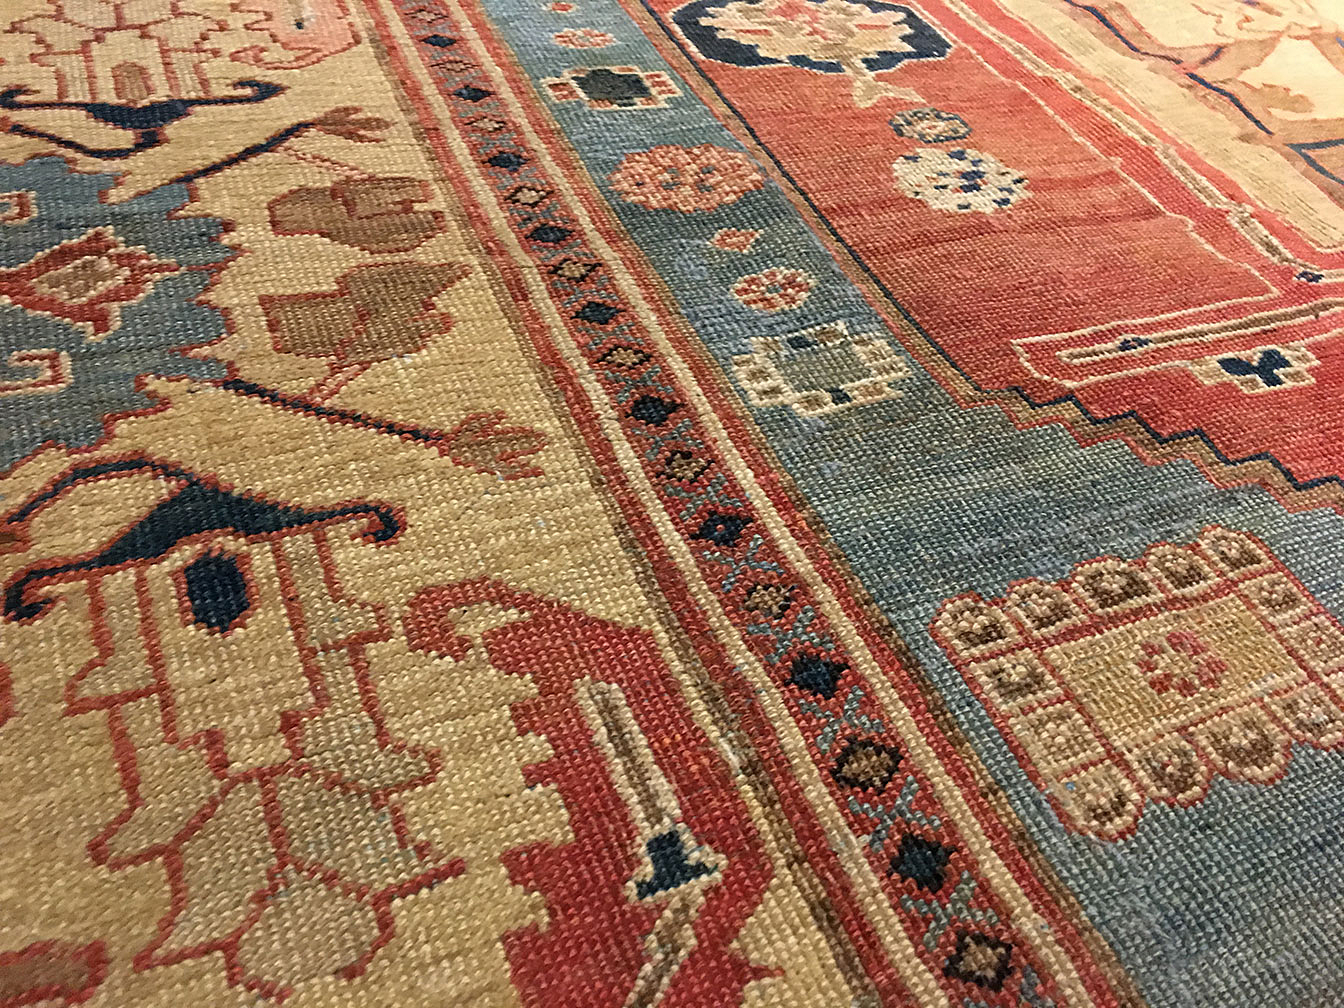 Antique bakshaish Carpet - # 52960